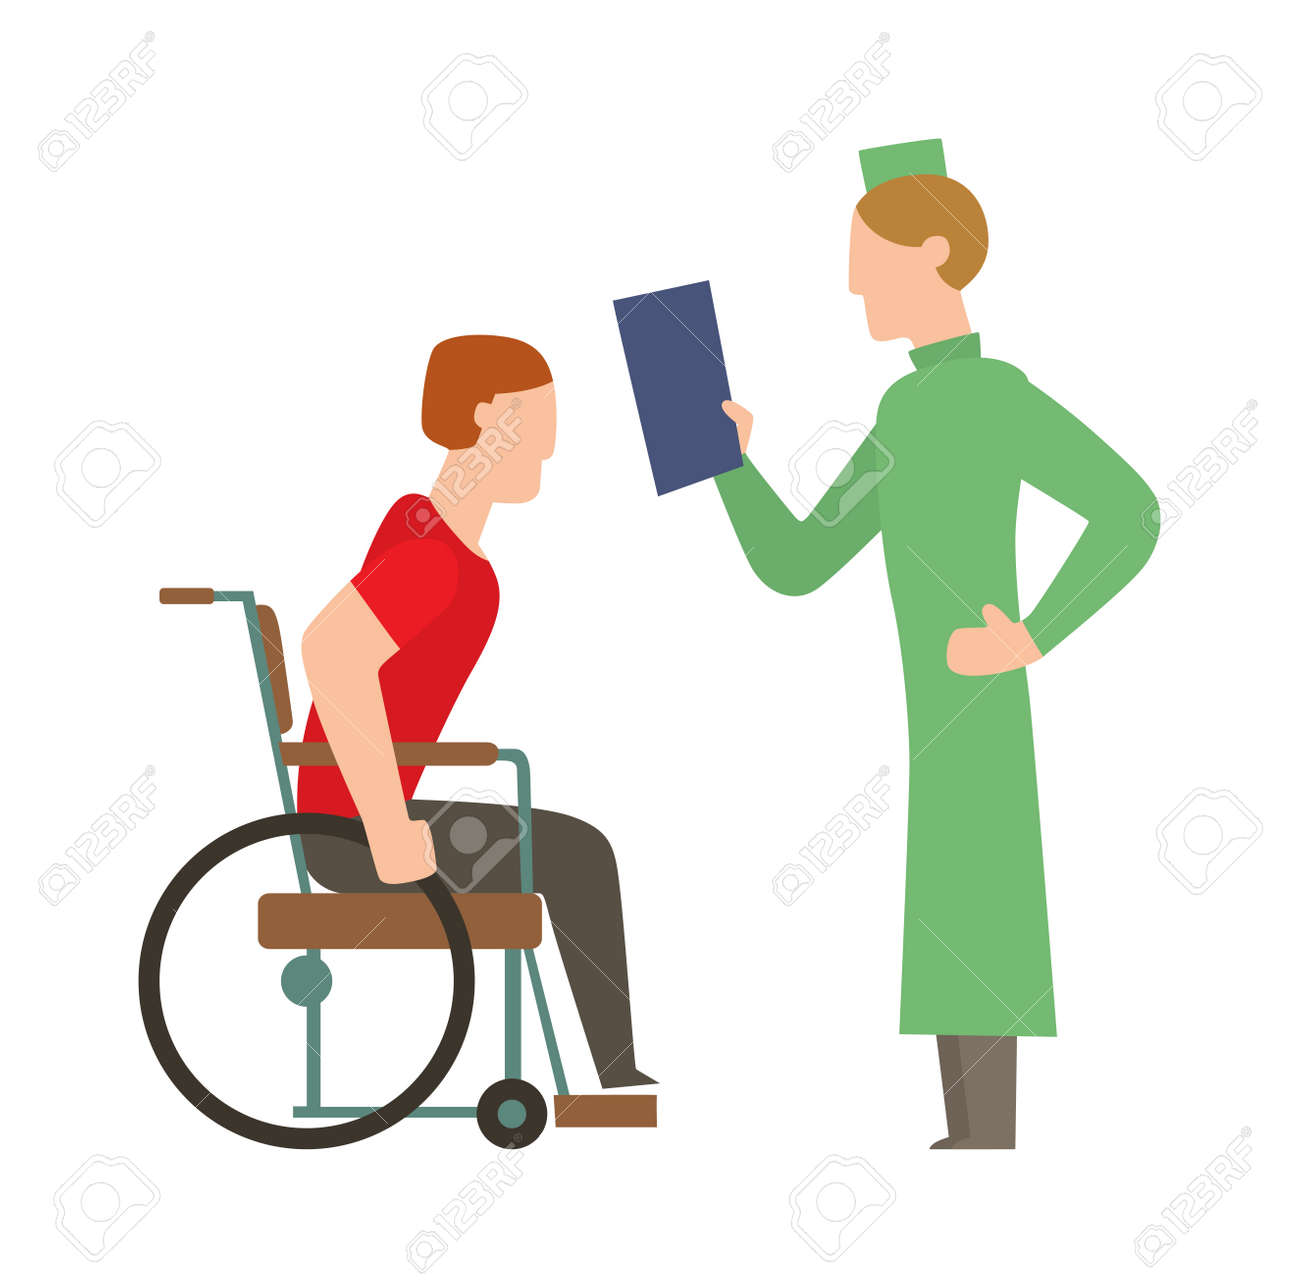 Cartoon physical therapy - Vector Medical Trauma People Stick Man Physical Therapy Concept Trauma People Medicine Human Treatment